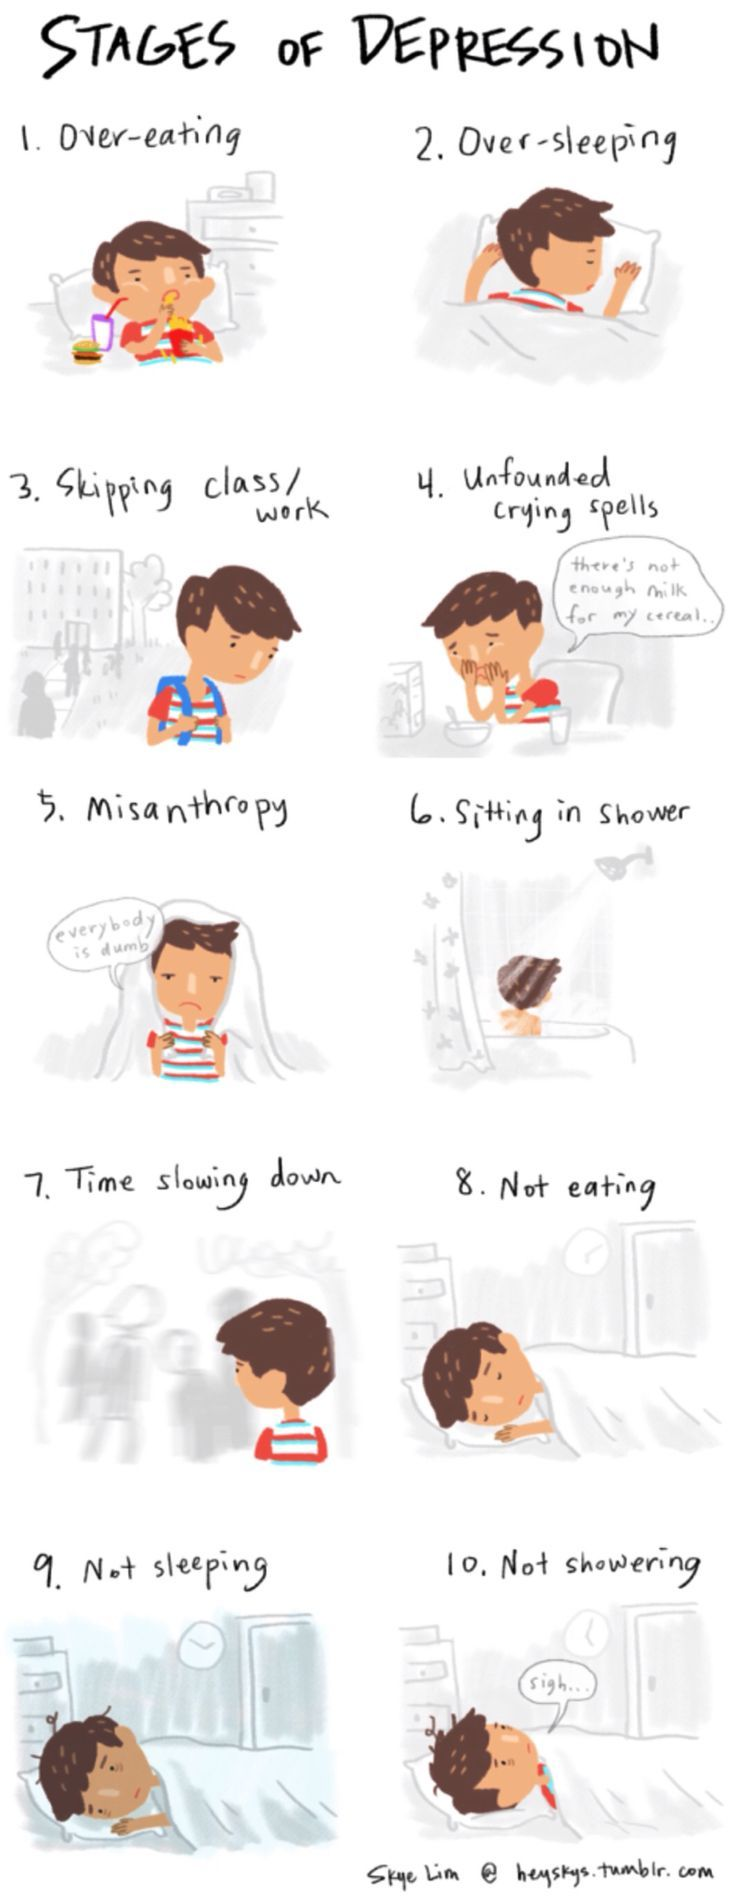 """Stages of Depression"" by Skye Lim"